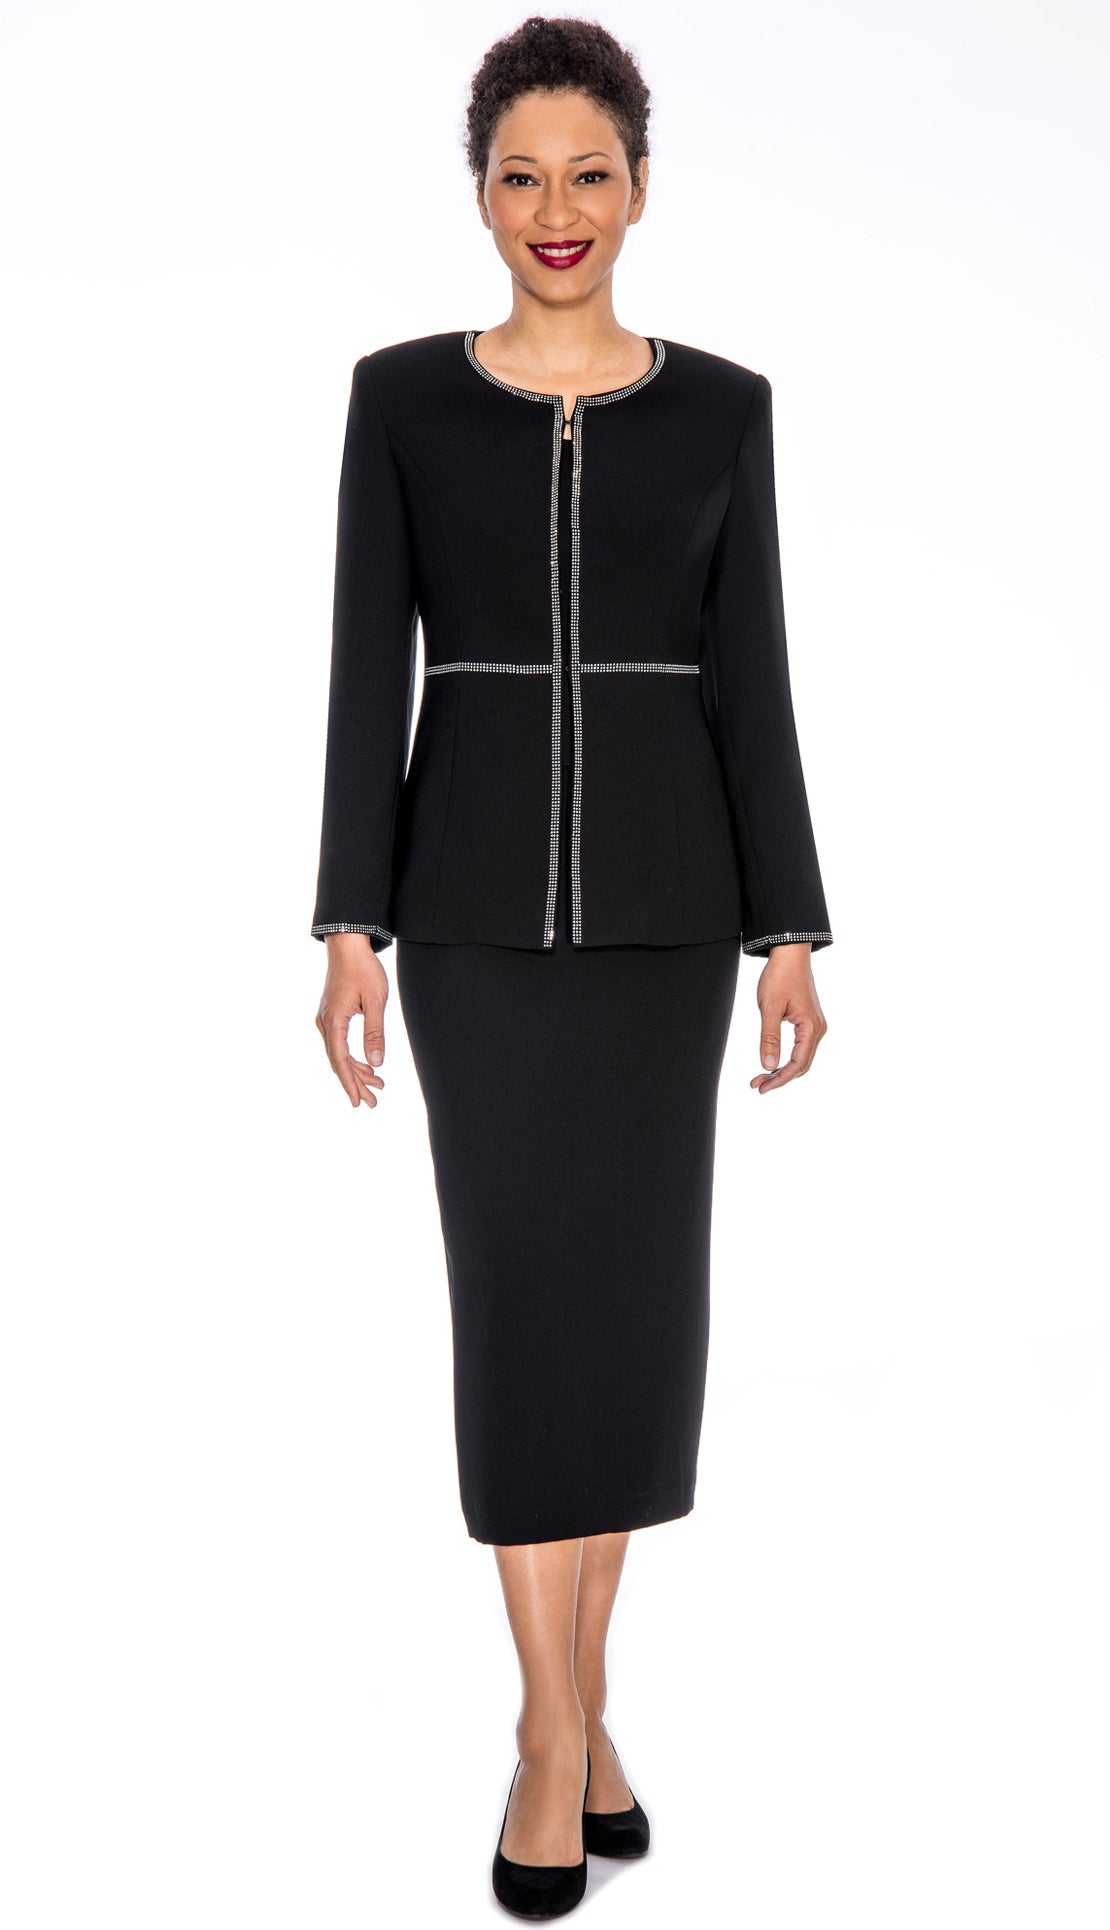 Giovanna Usher Suit 0652-Black - Church Suits For Less